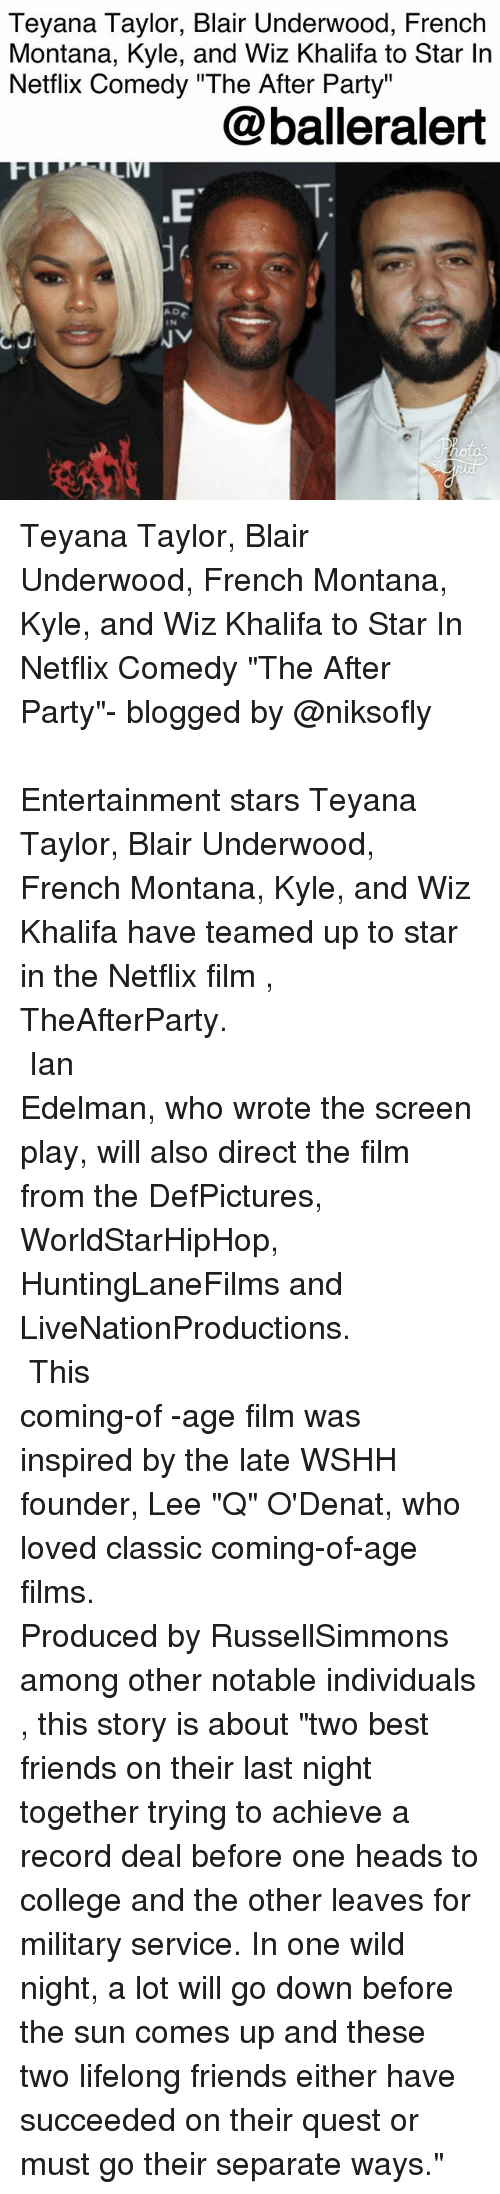 """French Montana: Teyana Taylor, Blair Underwood, French  Montana, Kyle, and Wiz Khalifa to Star In  Netflix Comedy """"The After Party""""  @balleralert  A D  IN Teyana Taylor, Blair Underwood, French Montana, Kyle, and Wiz Khalifa to Star In Netflix Comedy """"The After Party""""- blogged by @niksofly ⠀⠀⠀⠀⠀⠀⠀⠀⠀⠀⠀⠀⠀⠀⠀⠀⠀⠀⠀⠀⠀⠀⠀⠀⠀⠀⠀⠀⠀⠀⠀⠀⠀ Entertainment stars Teyana Taylor, Blair Underwood, French Montana, Kyle, and Wiz Khalifa have teamed up to star in the Netflix film , TheAfterParty. ⠀⠀⠀⠀⠀⠀⠀⠀⠀⠀⠀⠀⠀⠀⠀⠀⠀⠀⠀⠀⠀⠀⠀⠀⠀⠀⠀⠀⠀⠀⠀⠀⠀ Ian Edelman, who wrote the screen play, will also direct the film from the DefPictures, WorldStarHipHop, HuntingLaneFilms and LiveNationProductions. ⠀⠀⠀⠀⠀⠀⠀⠀⠀⠀⠀⠀⠀⠀⠀⠀⠀⠀⠀⠀⠀⠀⠀⠀⠀⠀⠀⠀⠀⠀⠀⠀⠀ This coming-of -age film was inspired by the late WSHH founder, Lee """"Q"""" O'Denat, who loved classic coming-of-age films. ⠀⠀⠀⠀⠀⠀⠀⠀⠀⠀⠀⠀⠀⠀⠀⠀⠀⠀⠀⠀⠀⠀⠀⠀⠀⠀⠀⠀⠀⠀⠀⠀⠀ Produced by RussellSimmons among other notable individuals , this story is about """"two best friends on their last night together trying to achieve a record deal before one heads to college and the other leaves for military service. In one wild night, a lot will go down before the sun comes up and these two lifelong friends either have succeeded on their quest or must go their separate ways."""""""